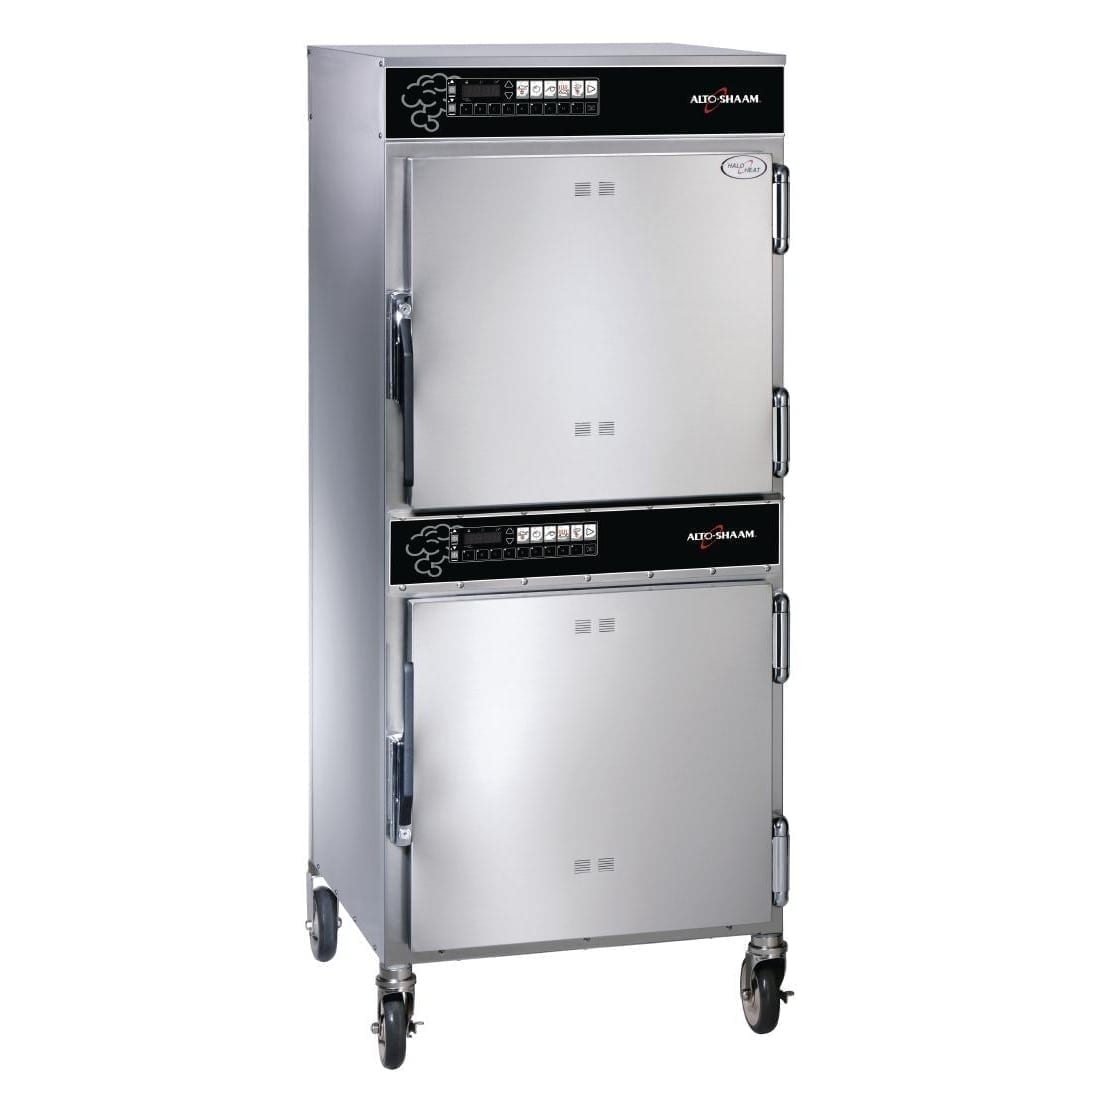 Alto Shaam Smoker Cook & Hold Oven 24Shelves 6.2kW (Direct)-0